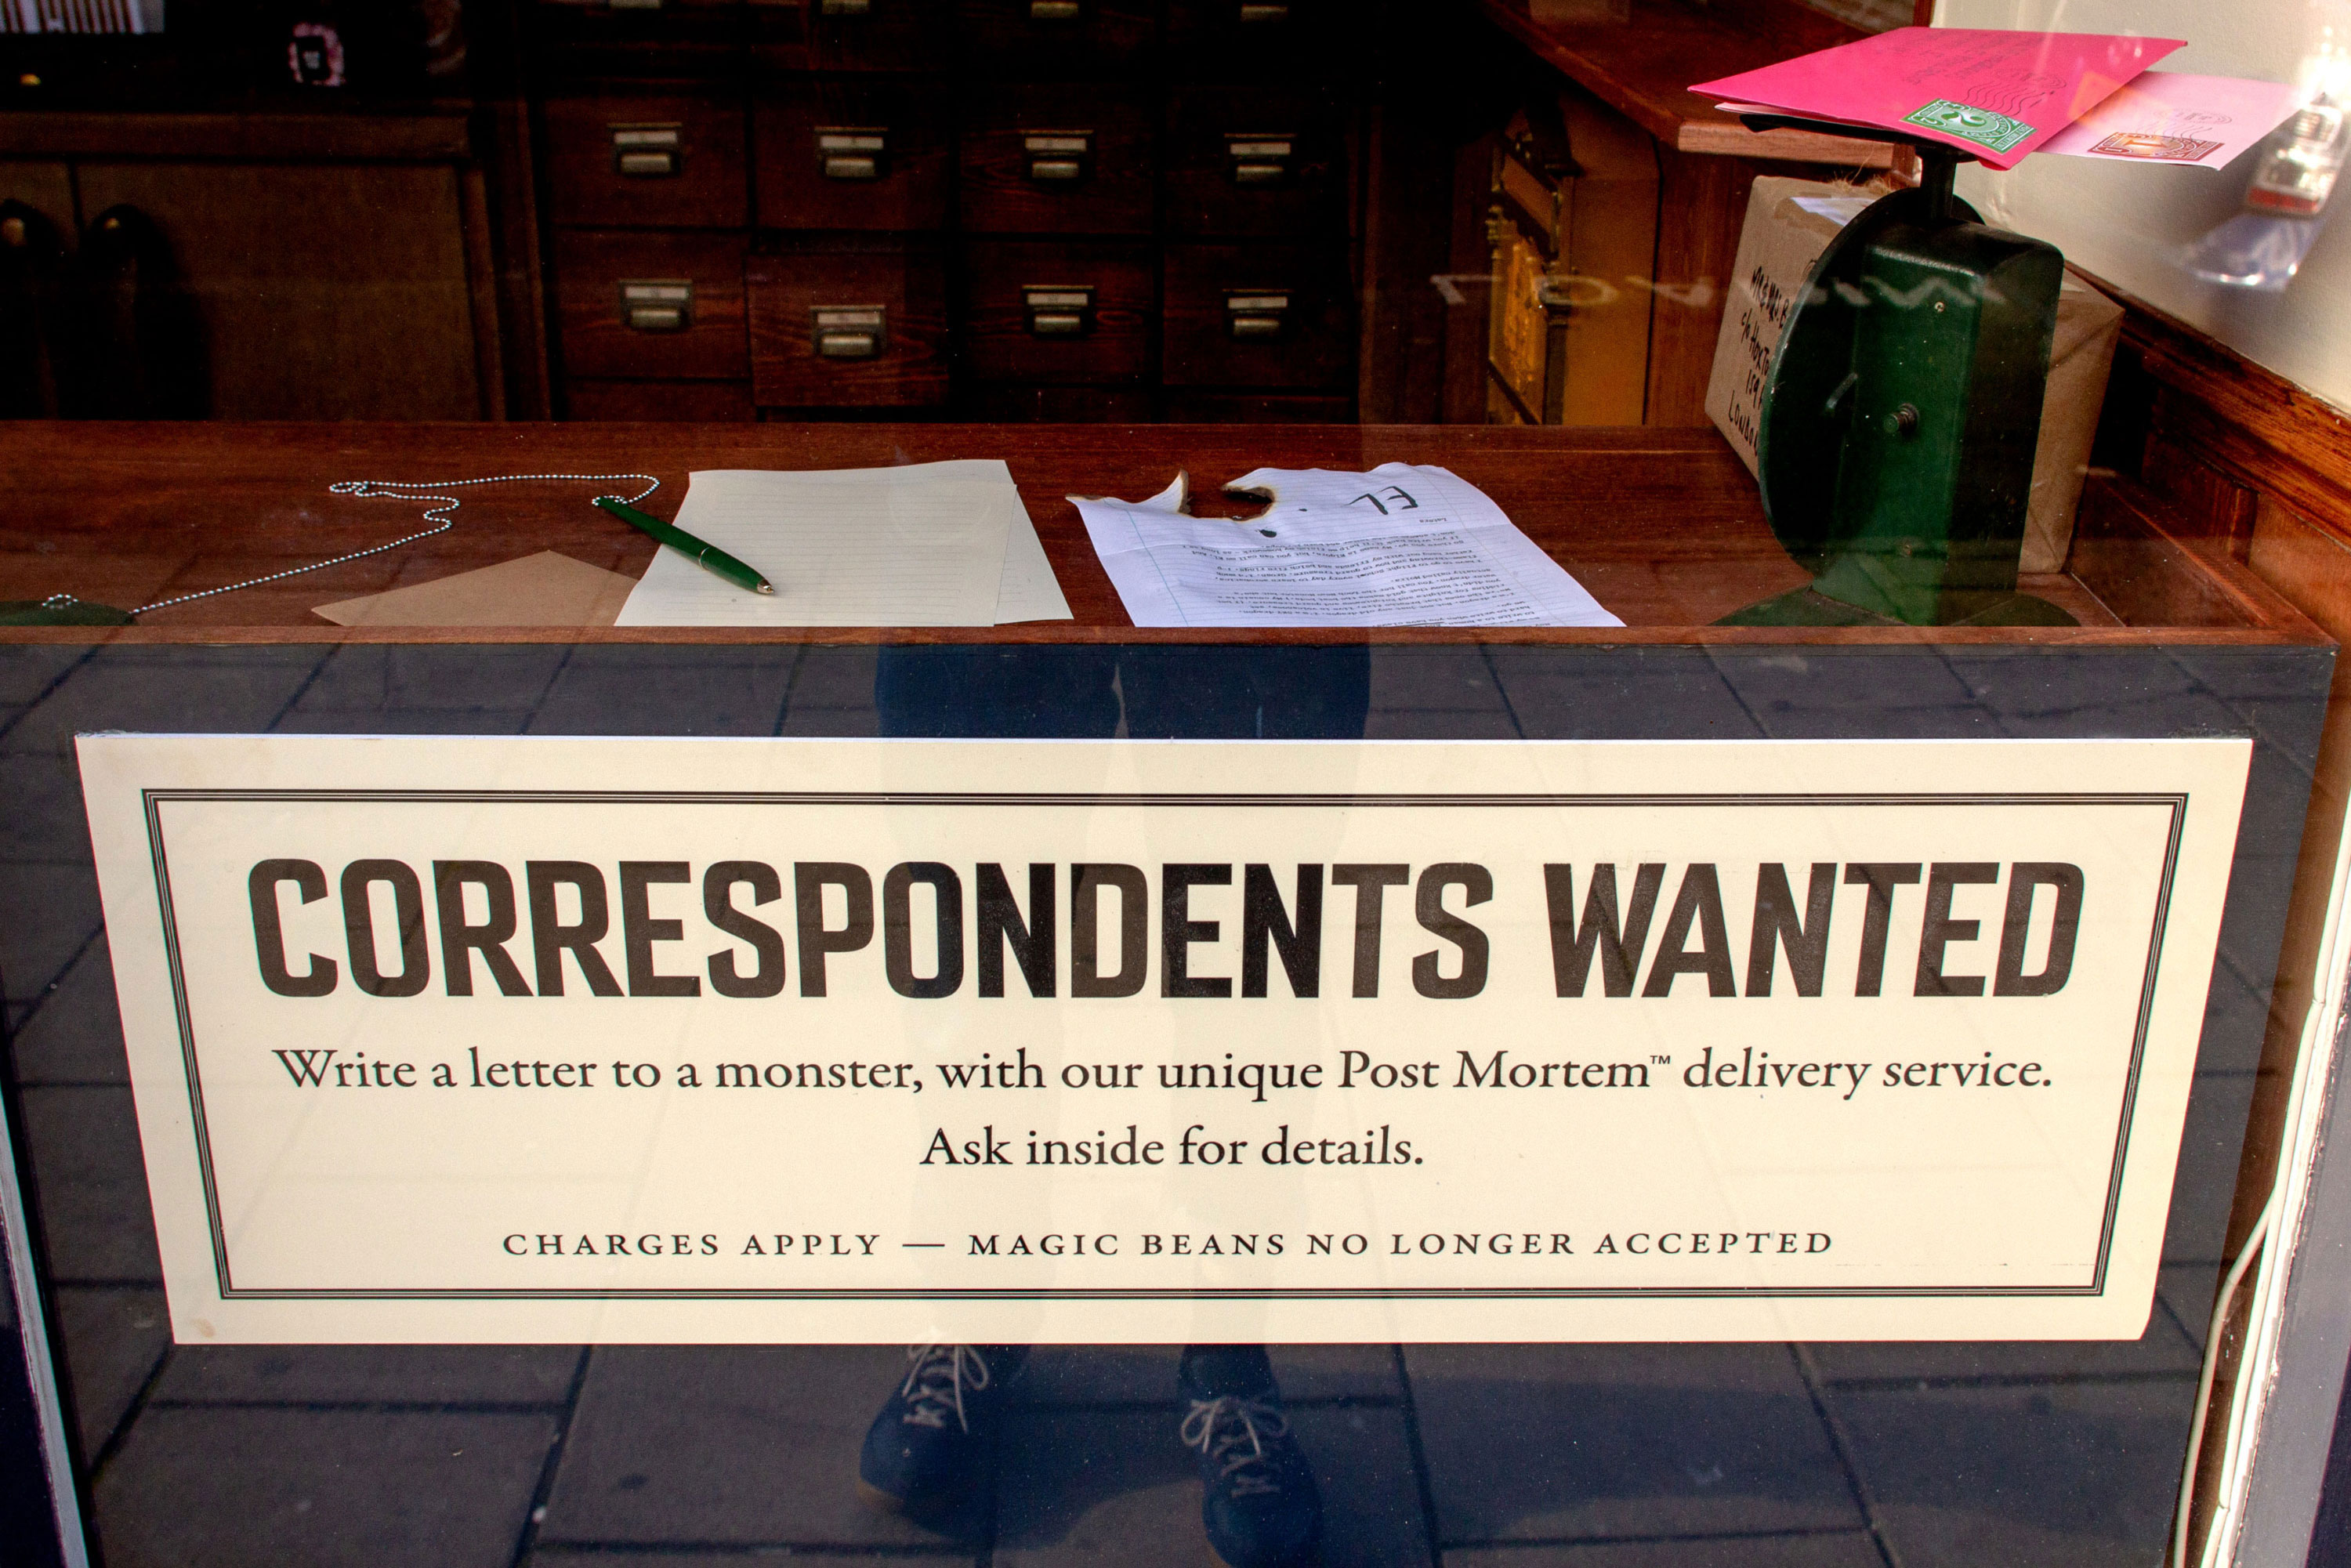 HSMS_correspondents_wanted_1